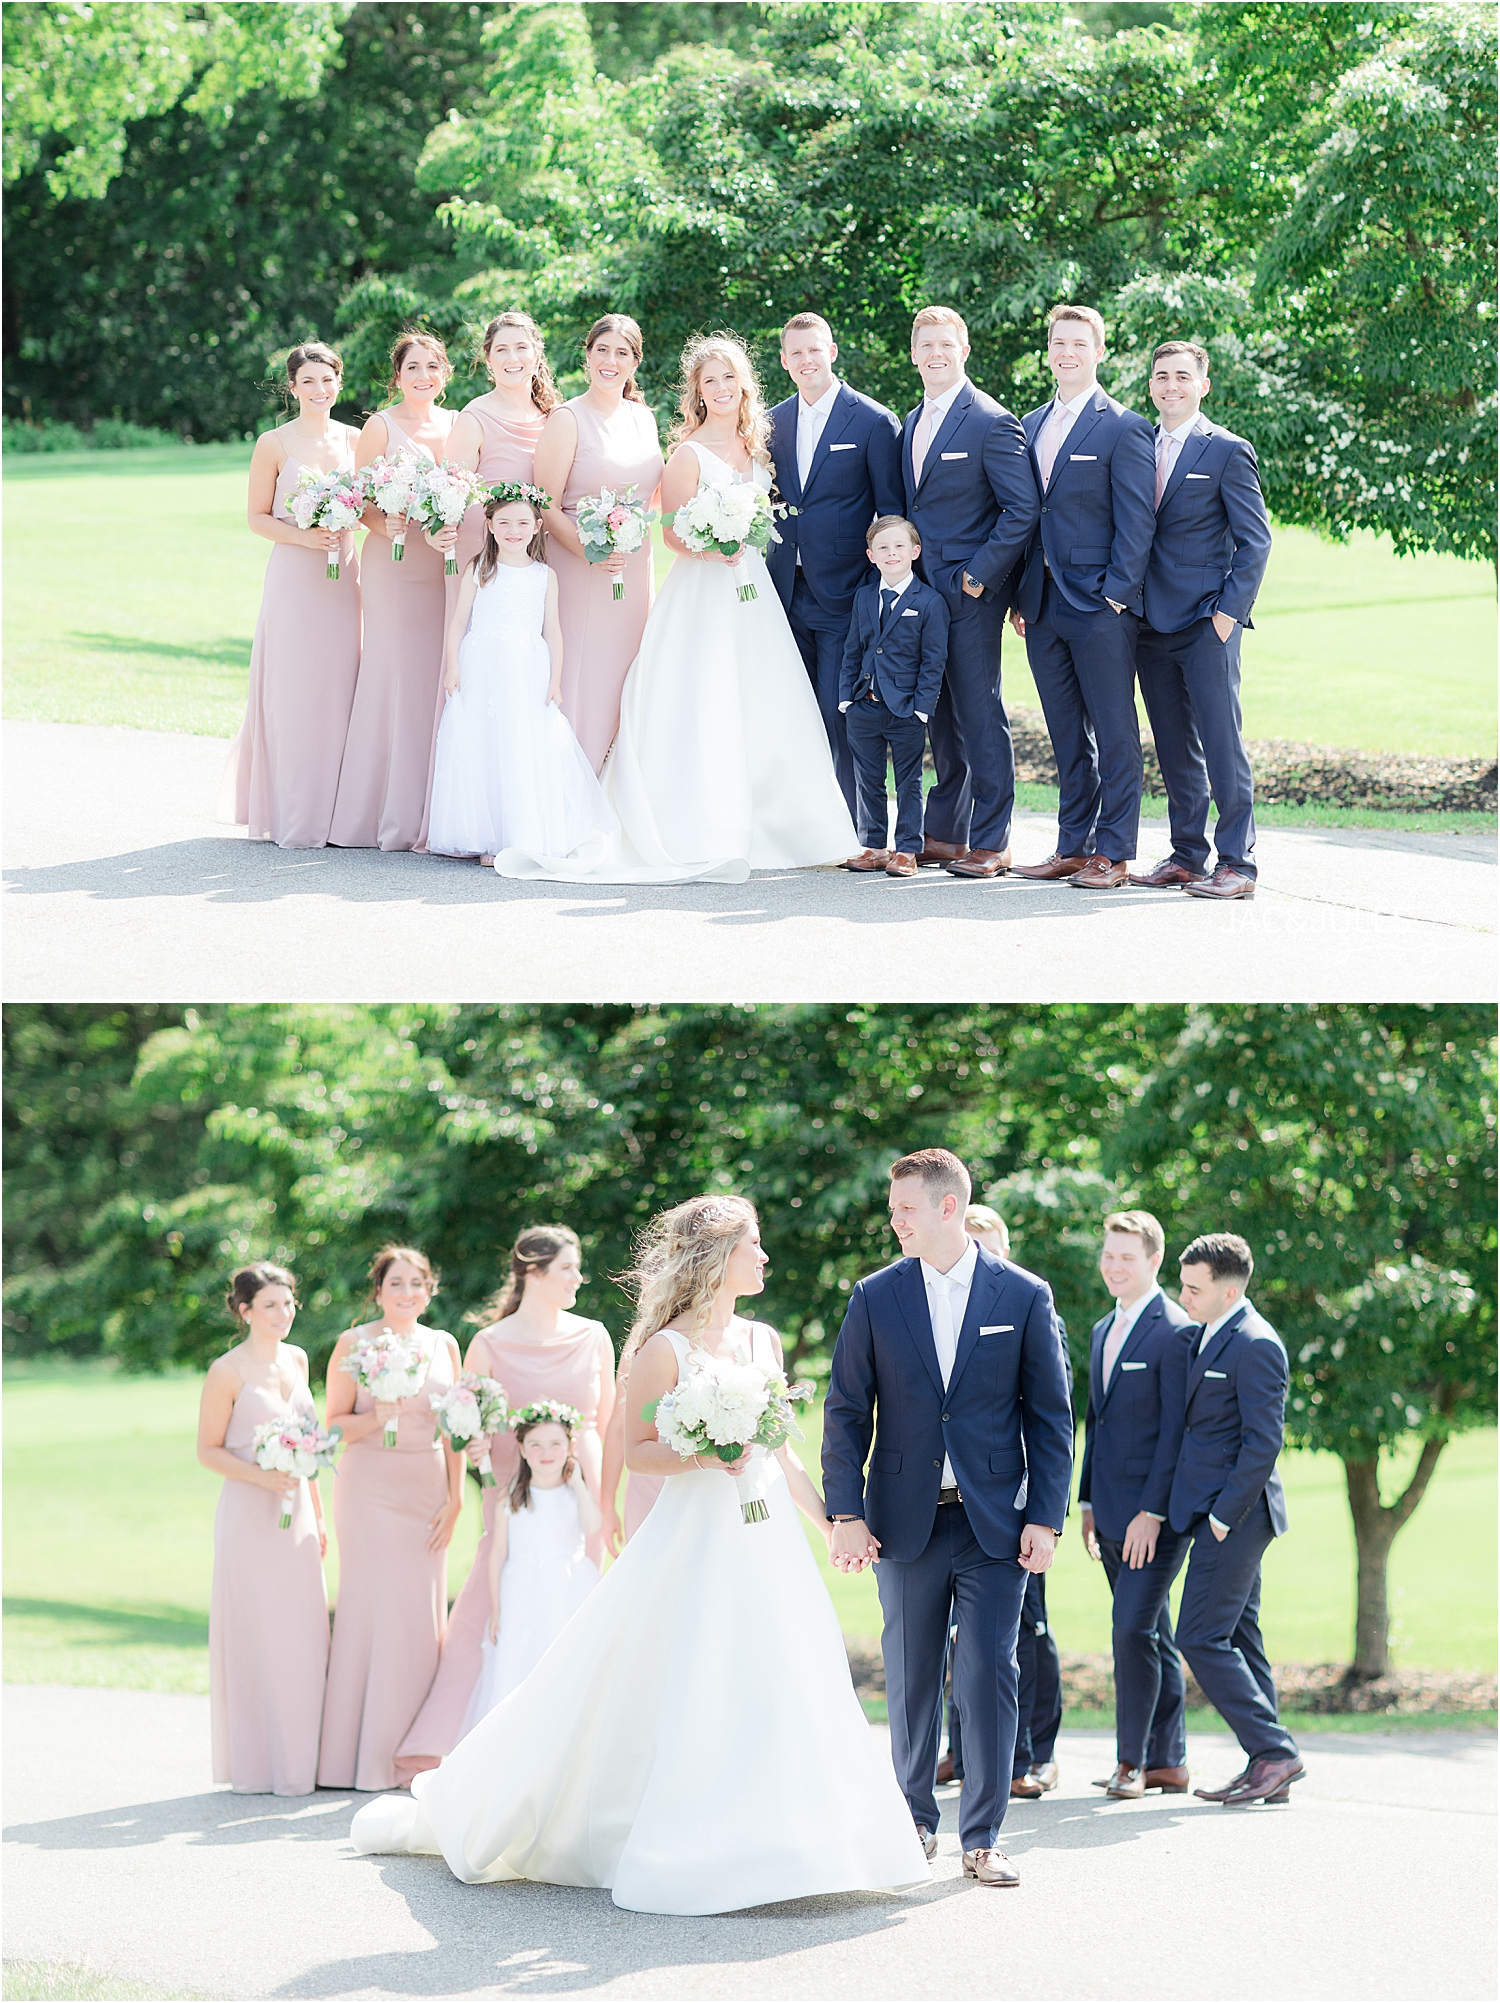 bridal party in pink dresses and blue suits at country club wedding in north jersey